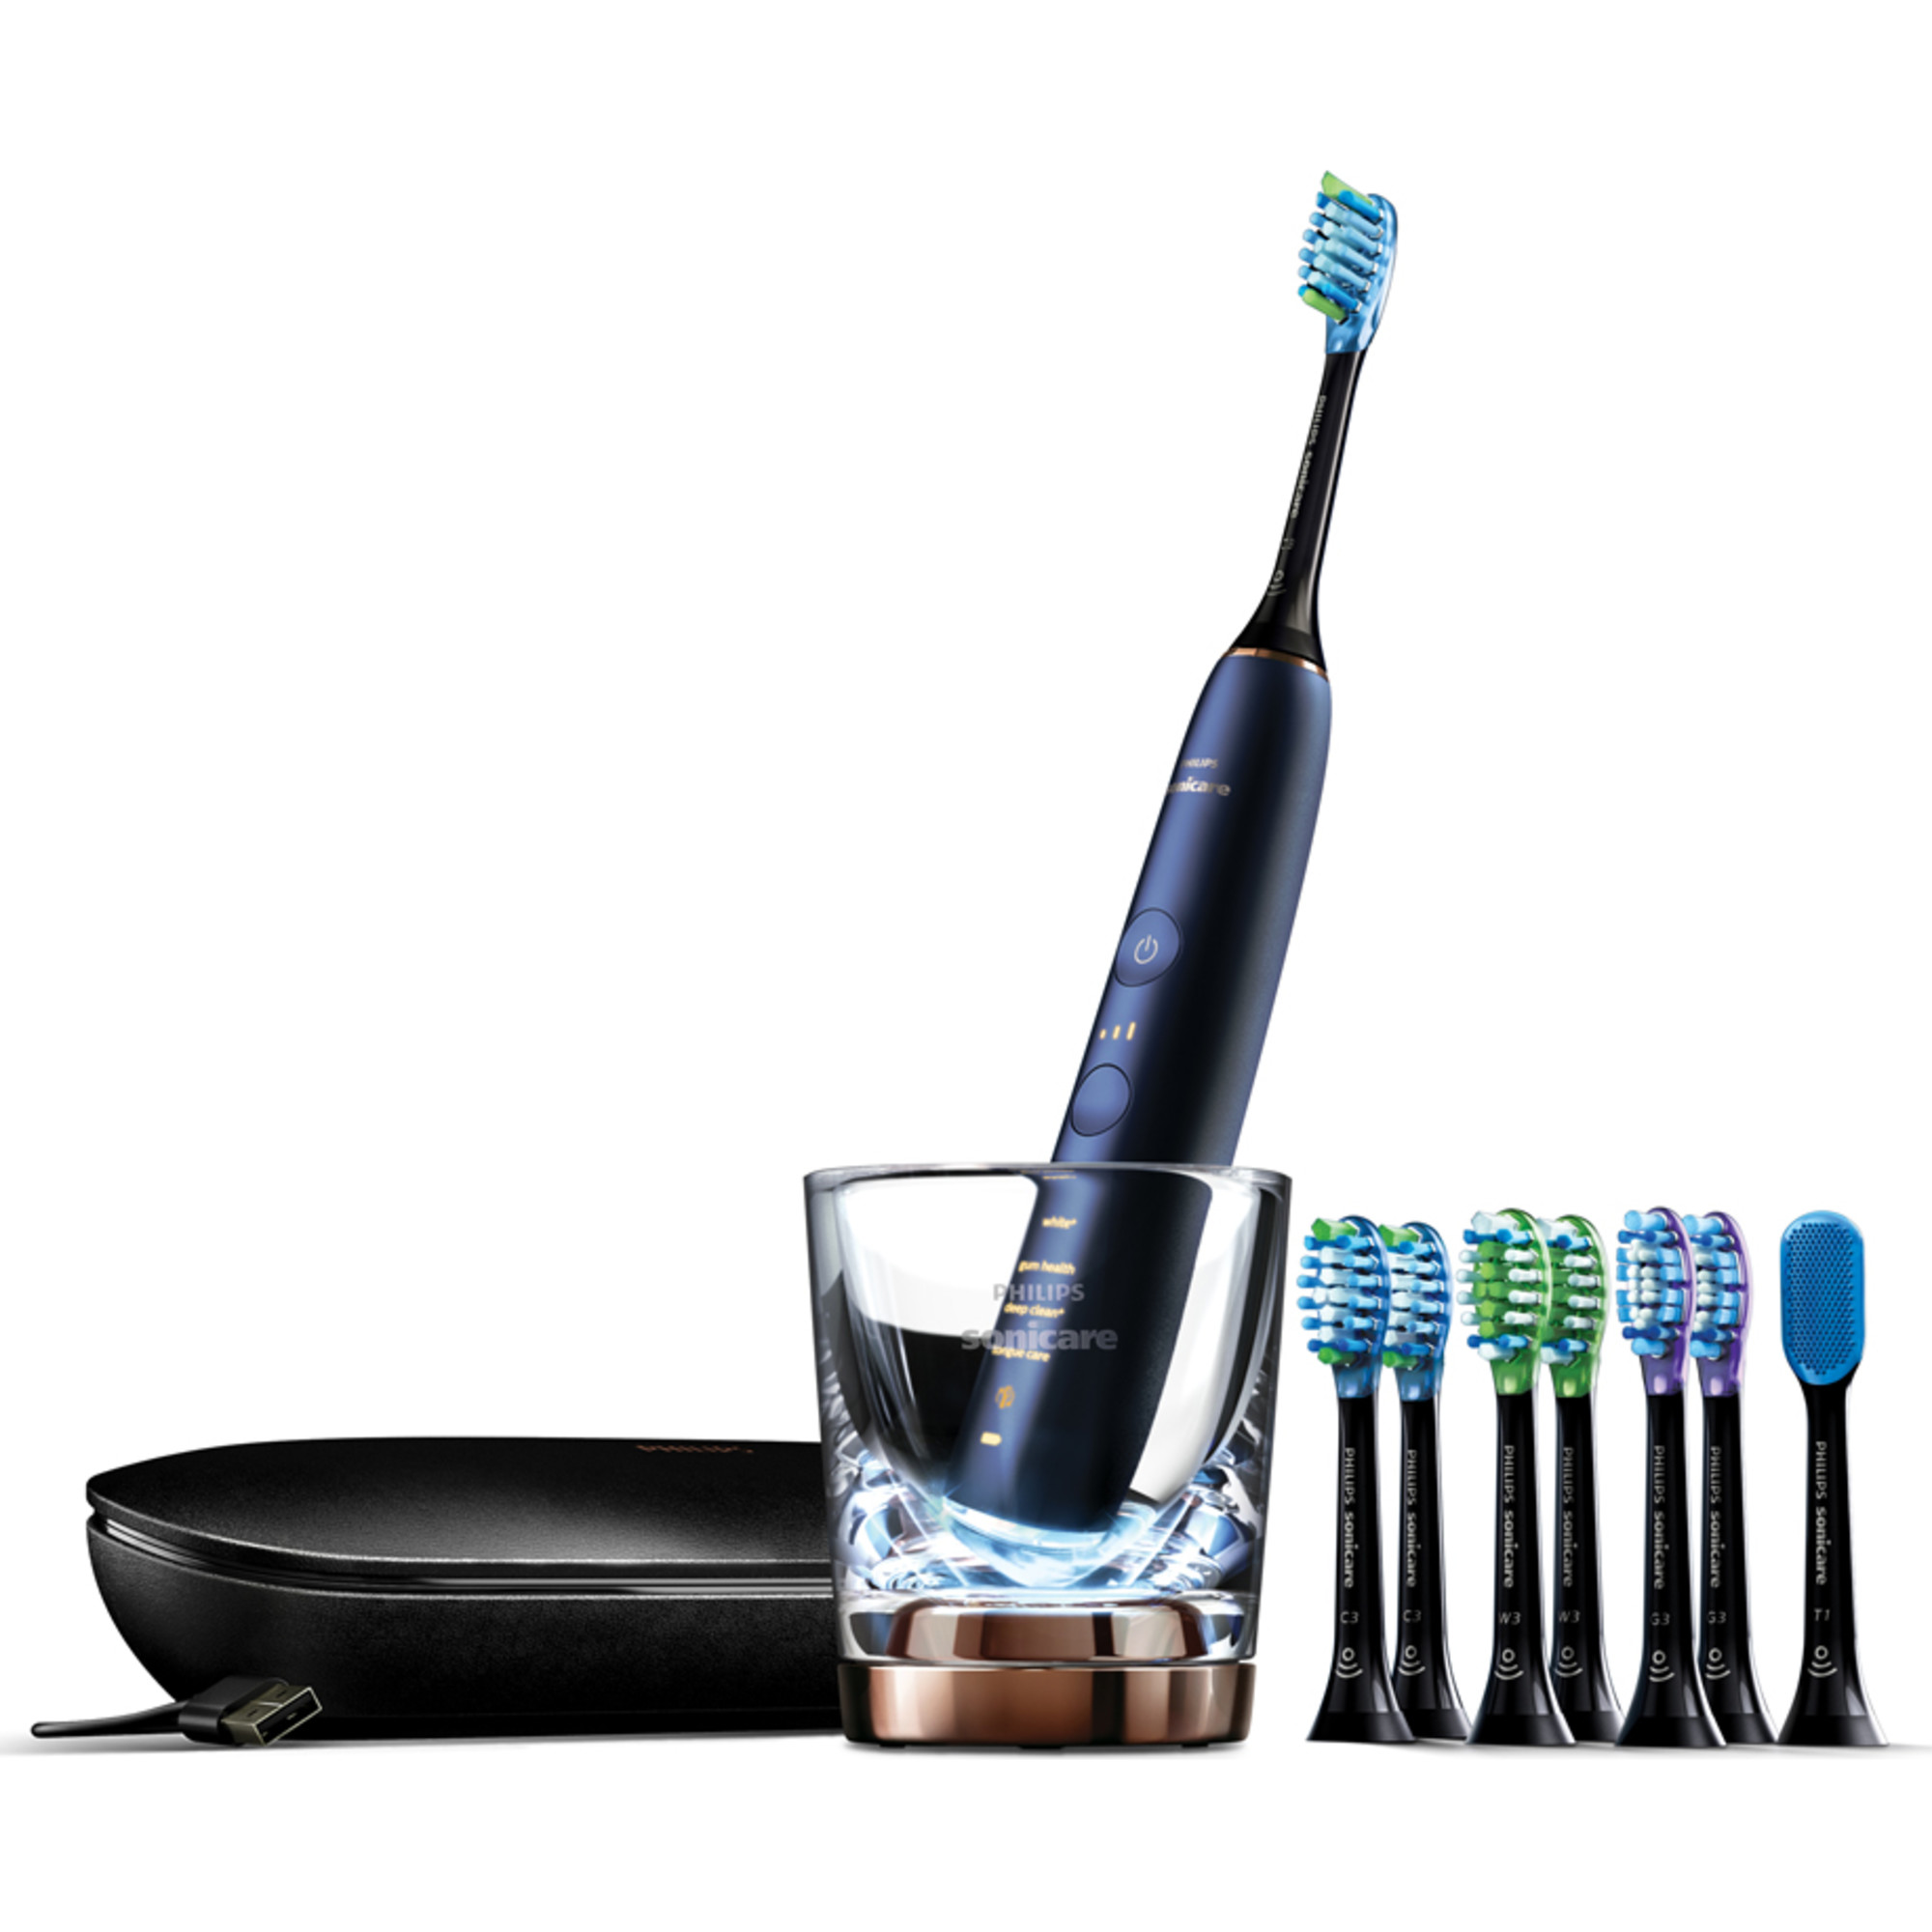 Philips Sonicare DiamondClean Smart 9700 Electric, Rechargeable toothbrush for Complete Oral Care, with Charging Travel Case, 5 modes, and 8 Brush Heads – 9700 Series, Lunar Blue, HX9957/51